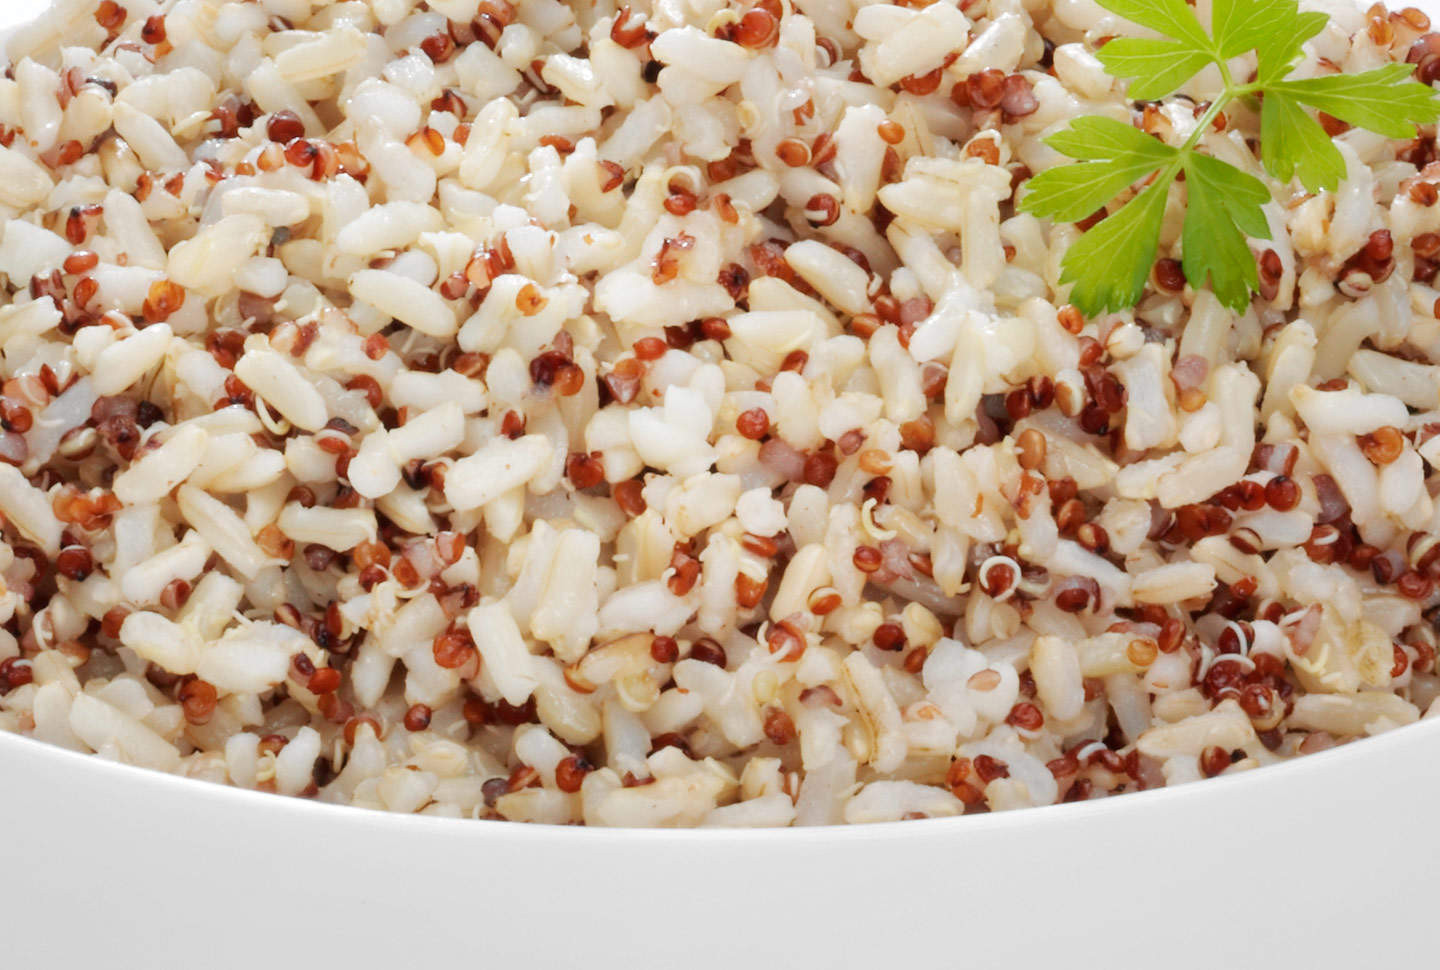 Brown Rice And Quinoa  how to cook brown rice and quinoa